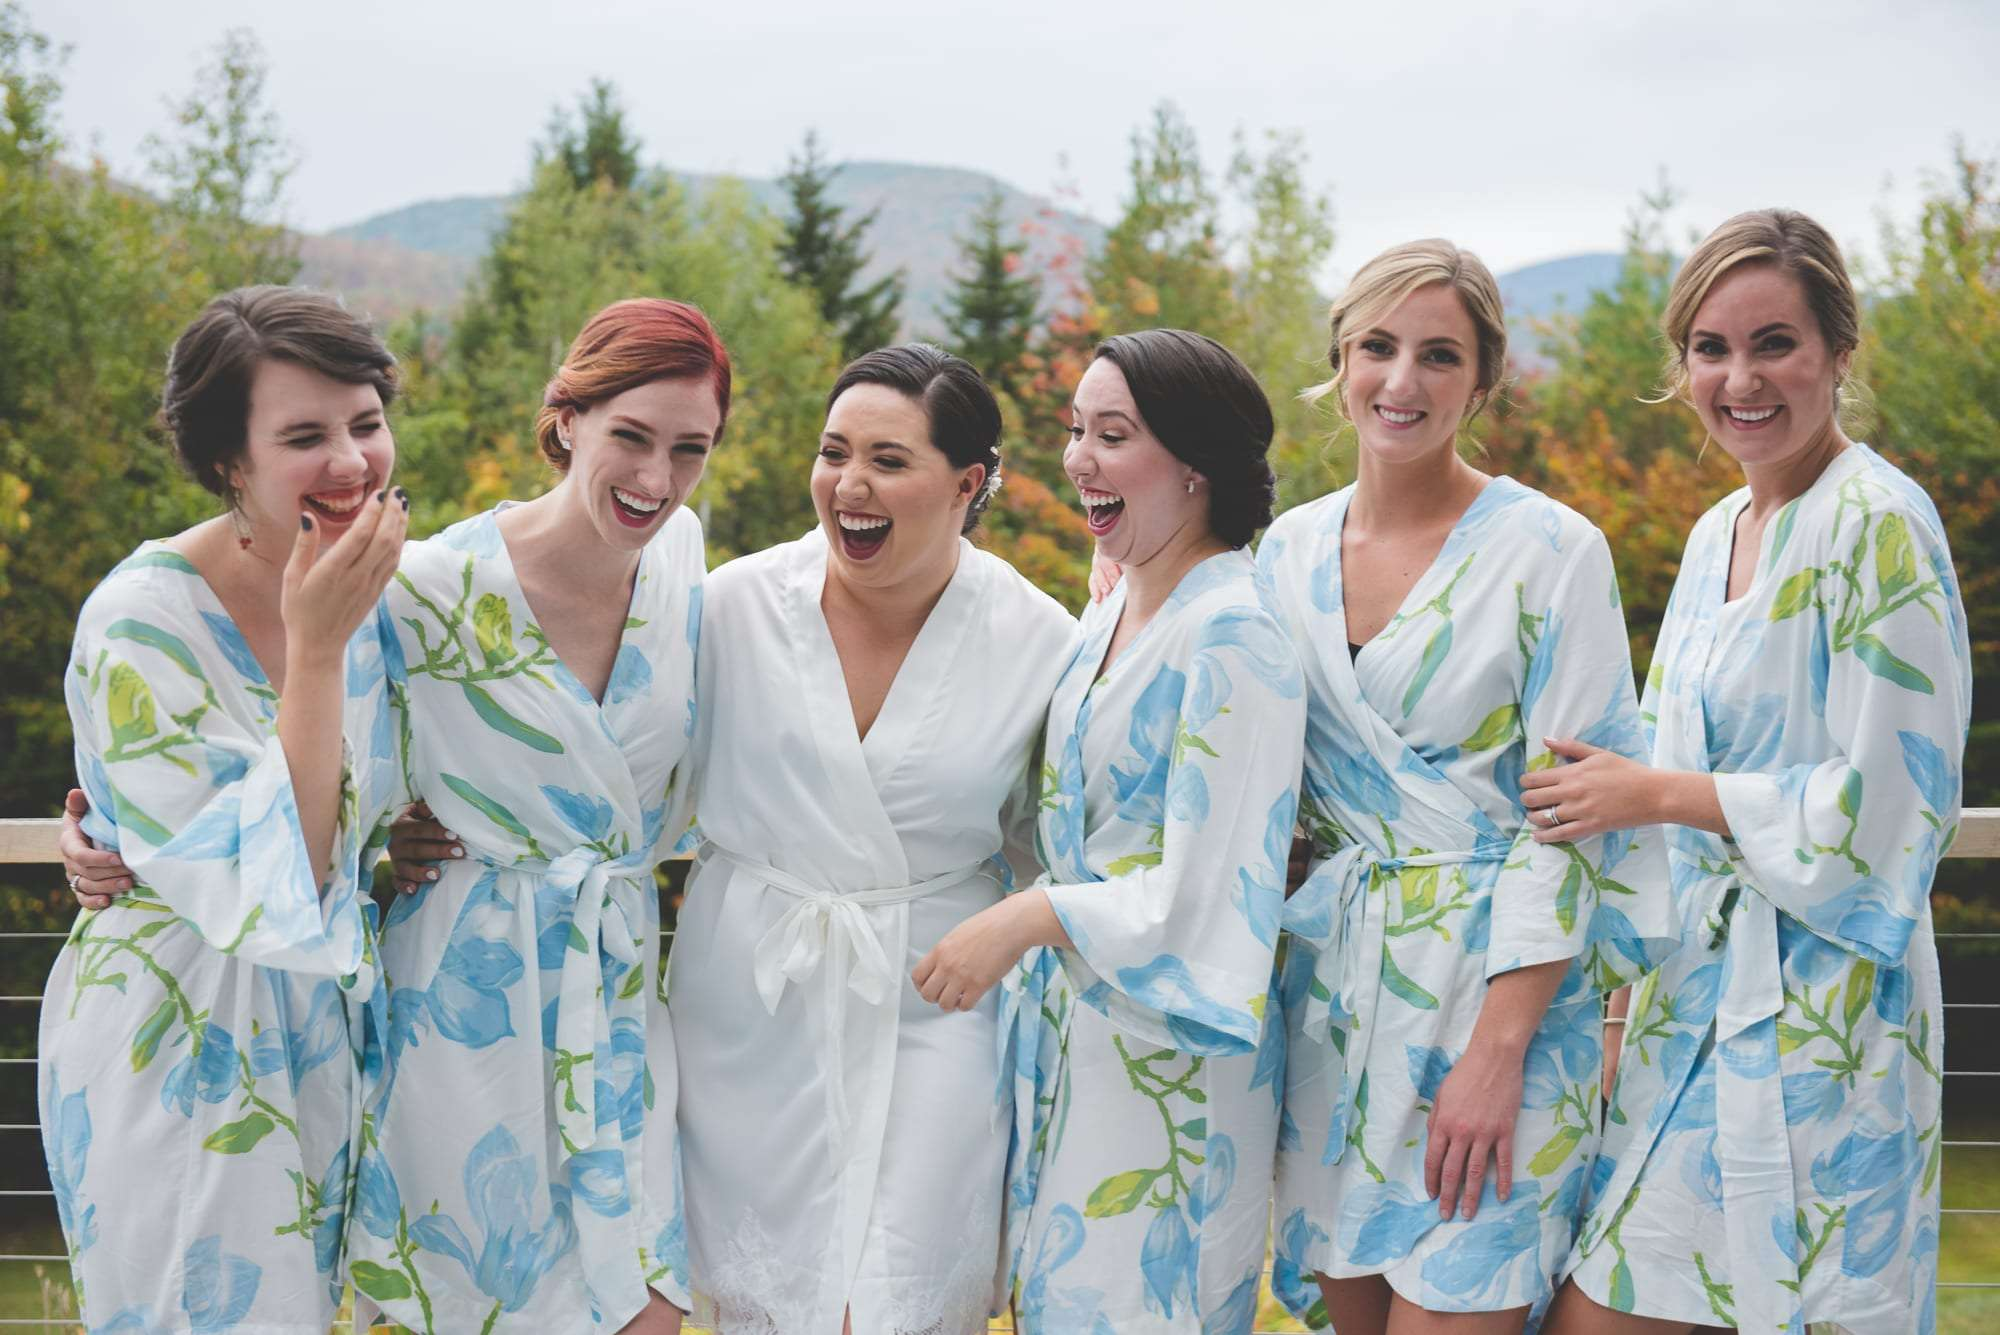 Bride and bridesmaids in robes Vermont wedding photographer